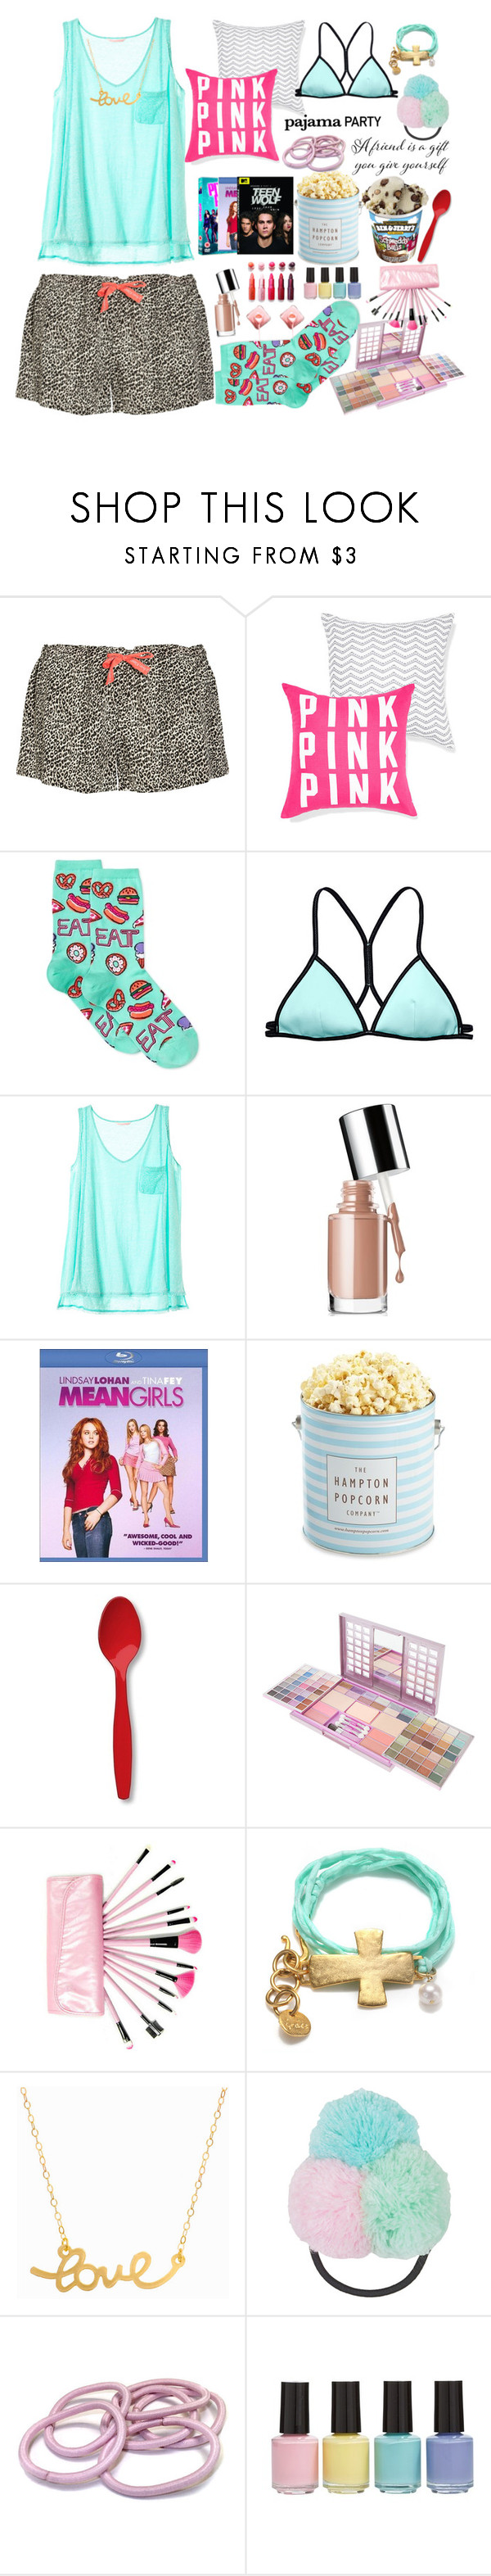 """Pajama party"" by mycherryblossom ❤ liked on Polyvore featuring Calvin Klein Underwear, HOT SOX, Beach Sexy, Victoria's Secret, Clinique, The Hampton Popcorn Company, Creative Converting, MAC Cosmetics, Minnie Grace and Topshop"